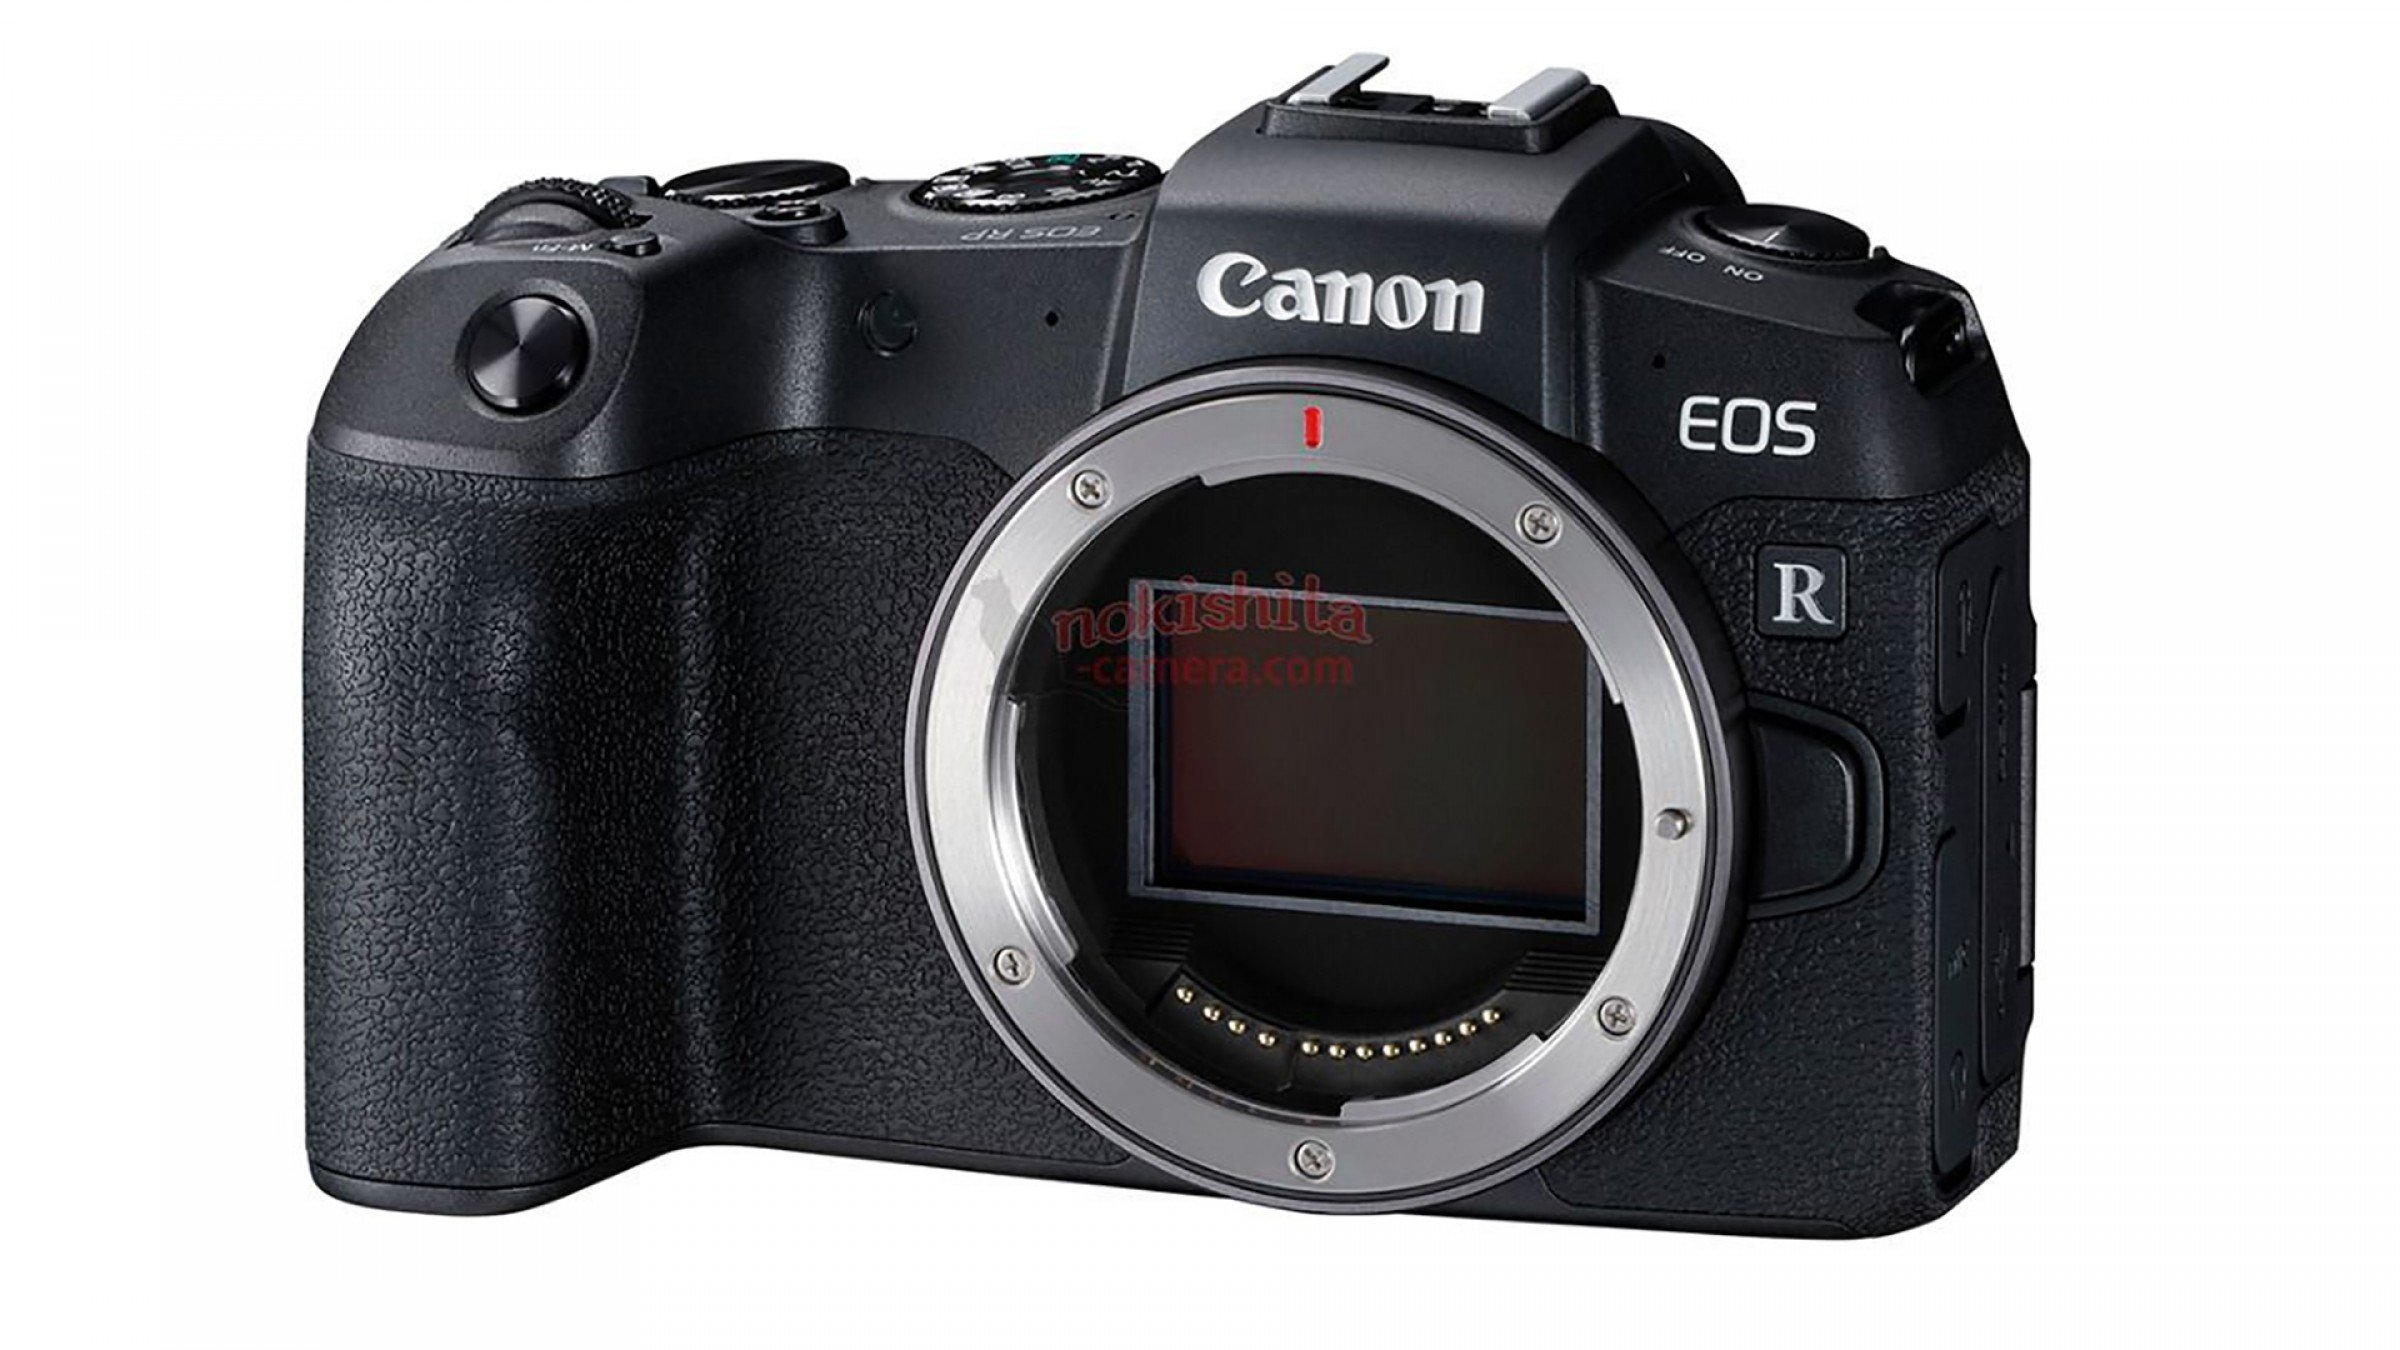 Canon EOS RP Price is Leaked at $1,299 for Body Only